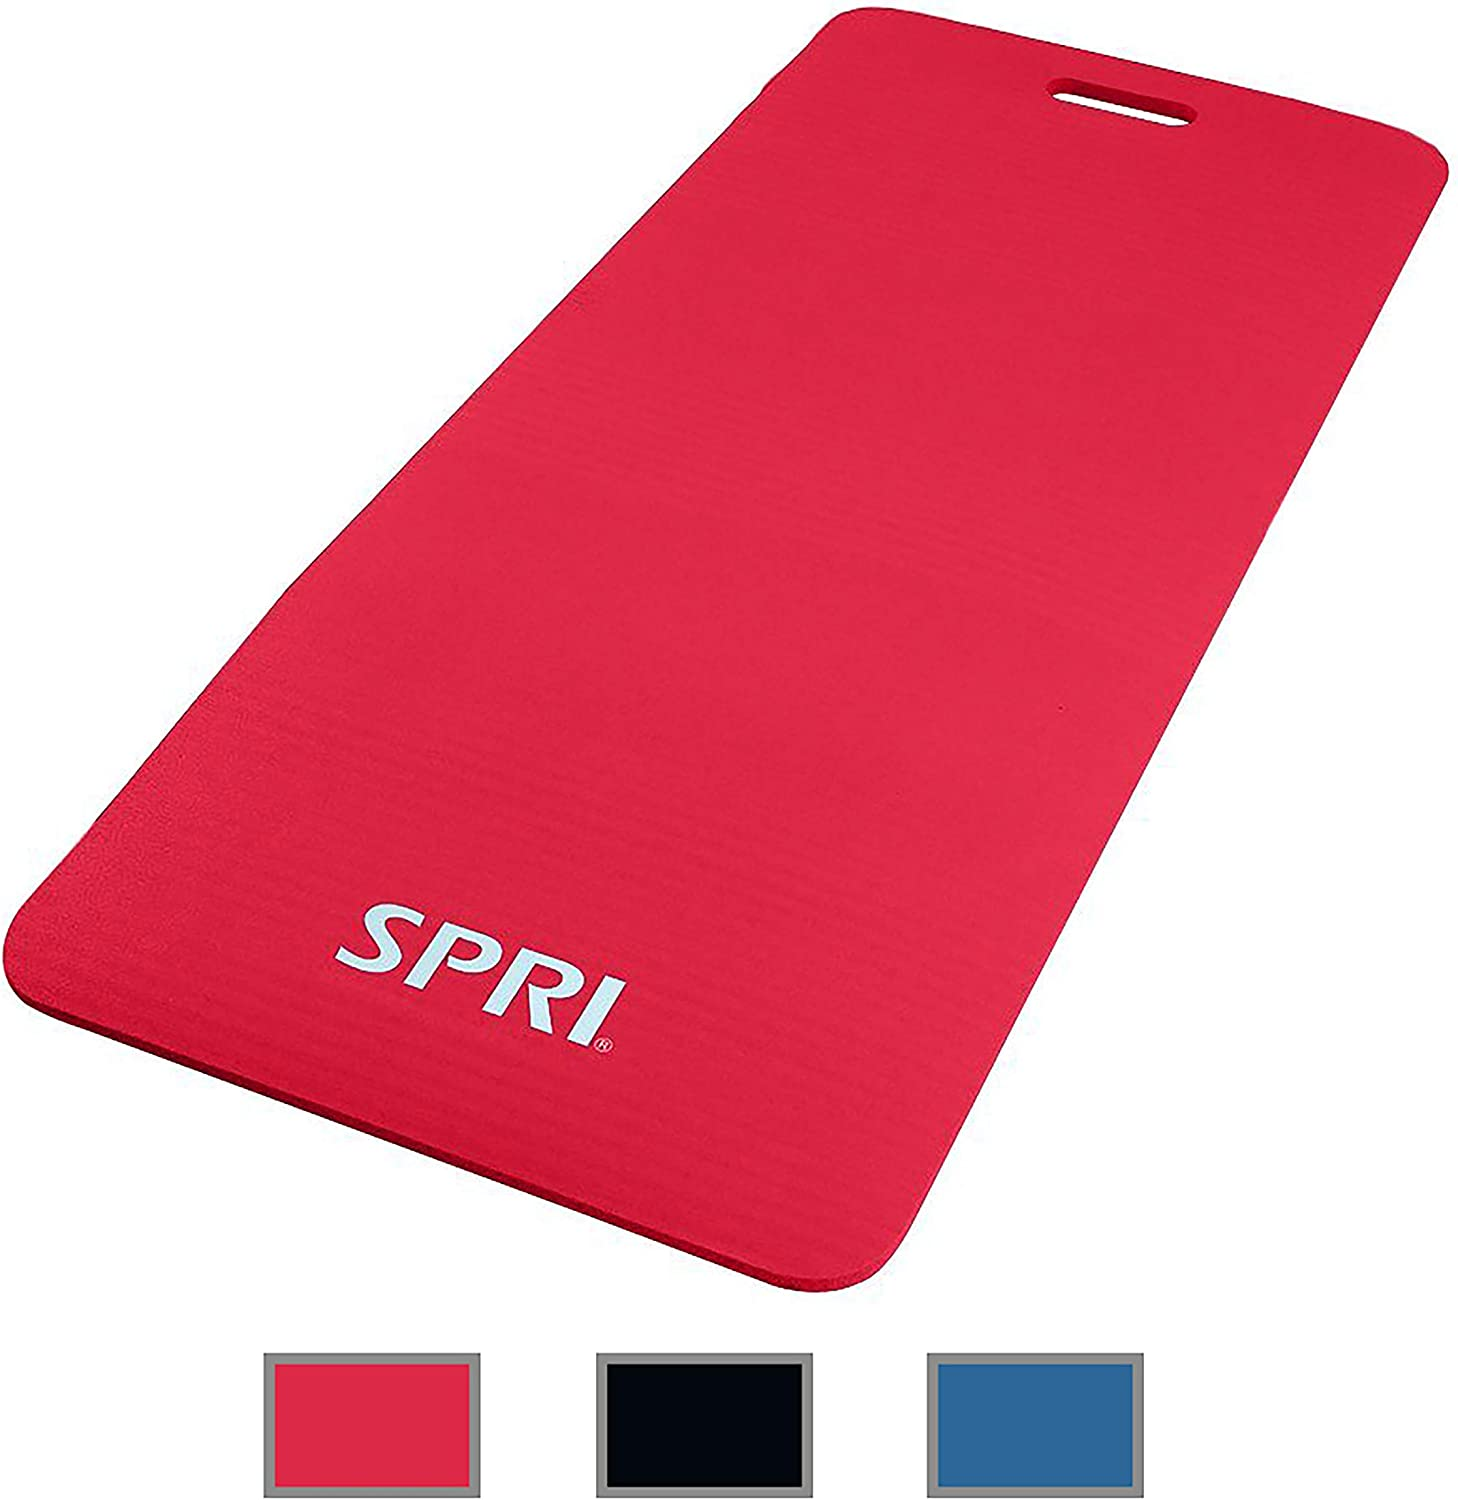 48L x 20W x 1//2-Inch Thick Yoga Pilates Stretching /& Floor Exercises SPRI Exercise Mat for Fitness